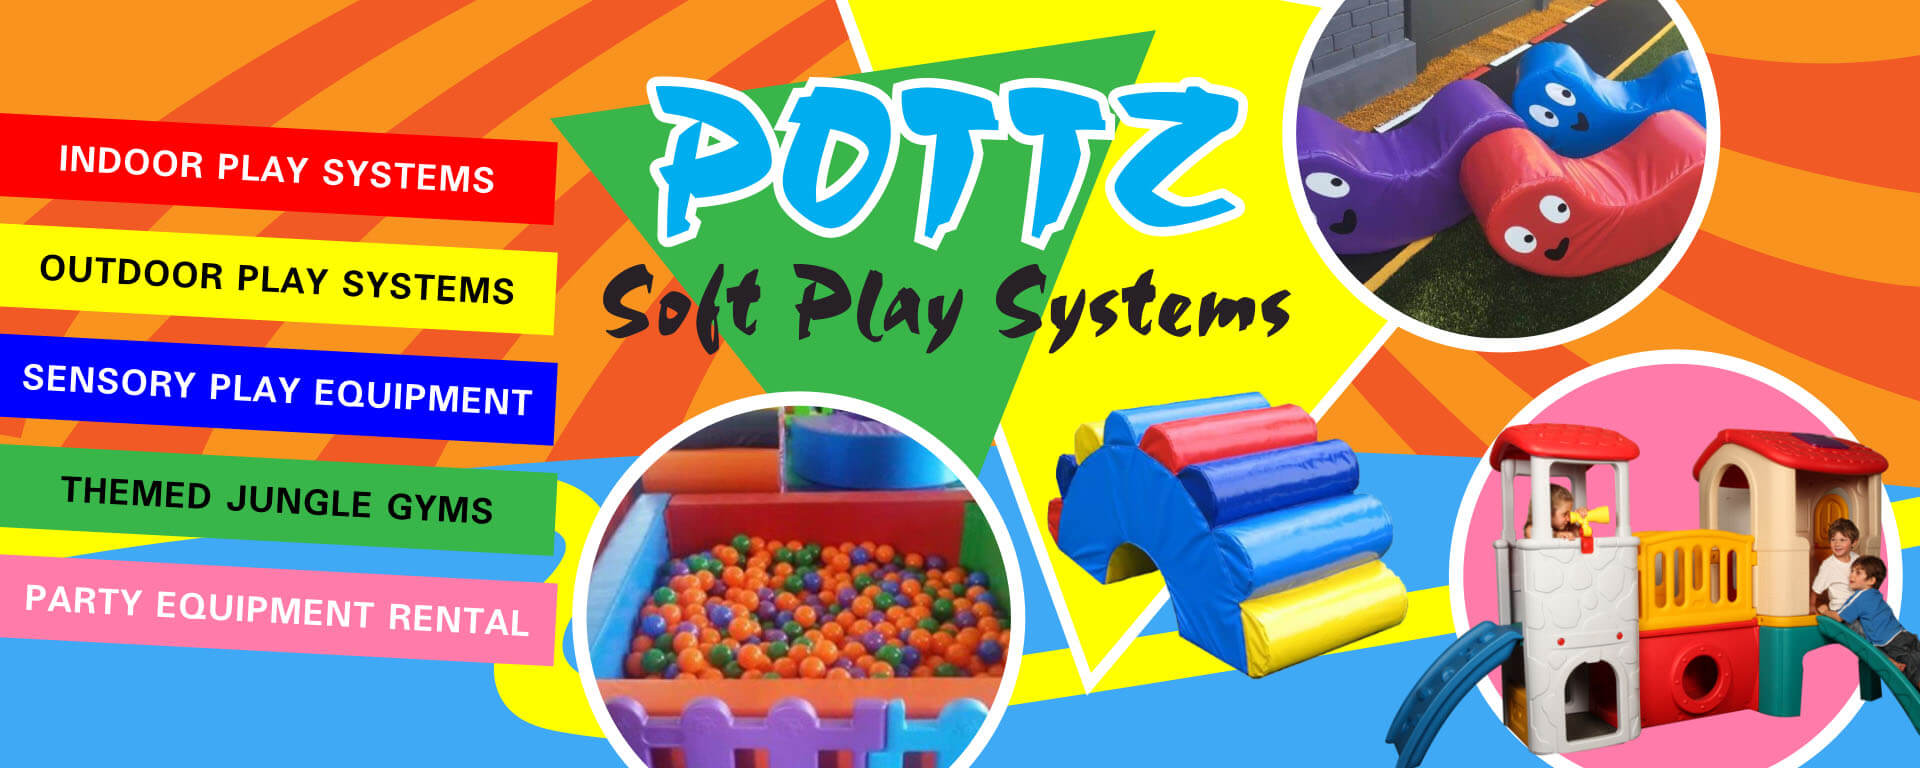 Pottz Soft Play Systems